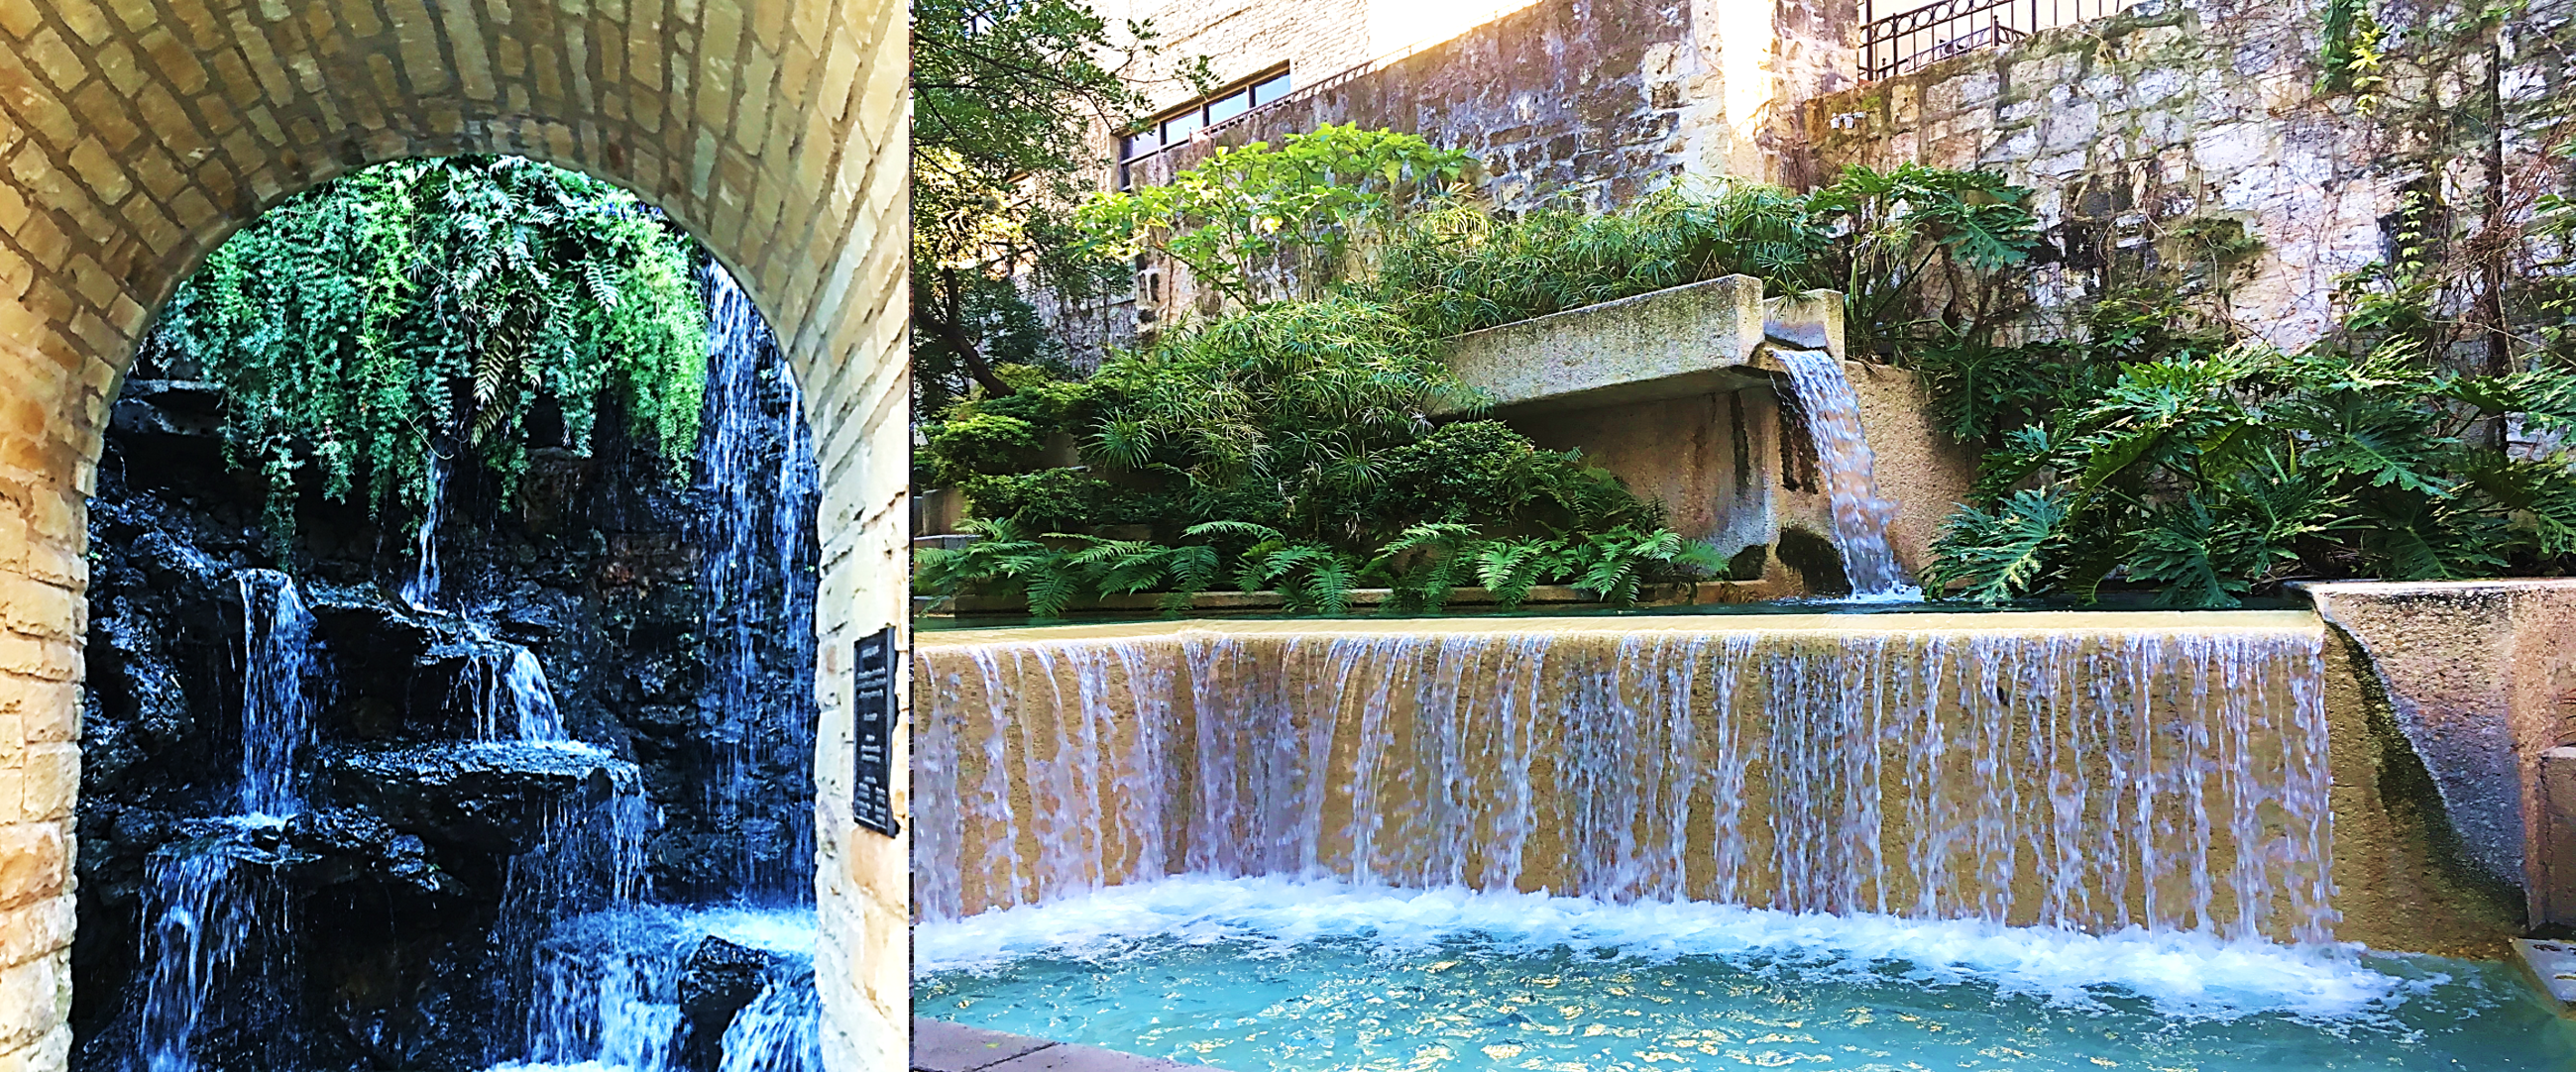 San Antonio Riverwalk waterfall